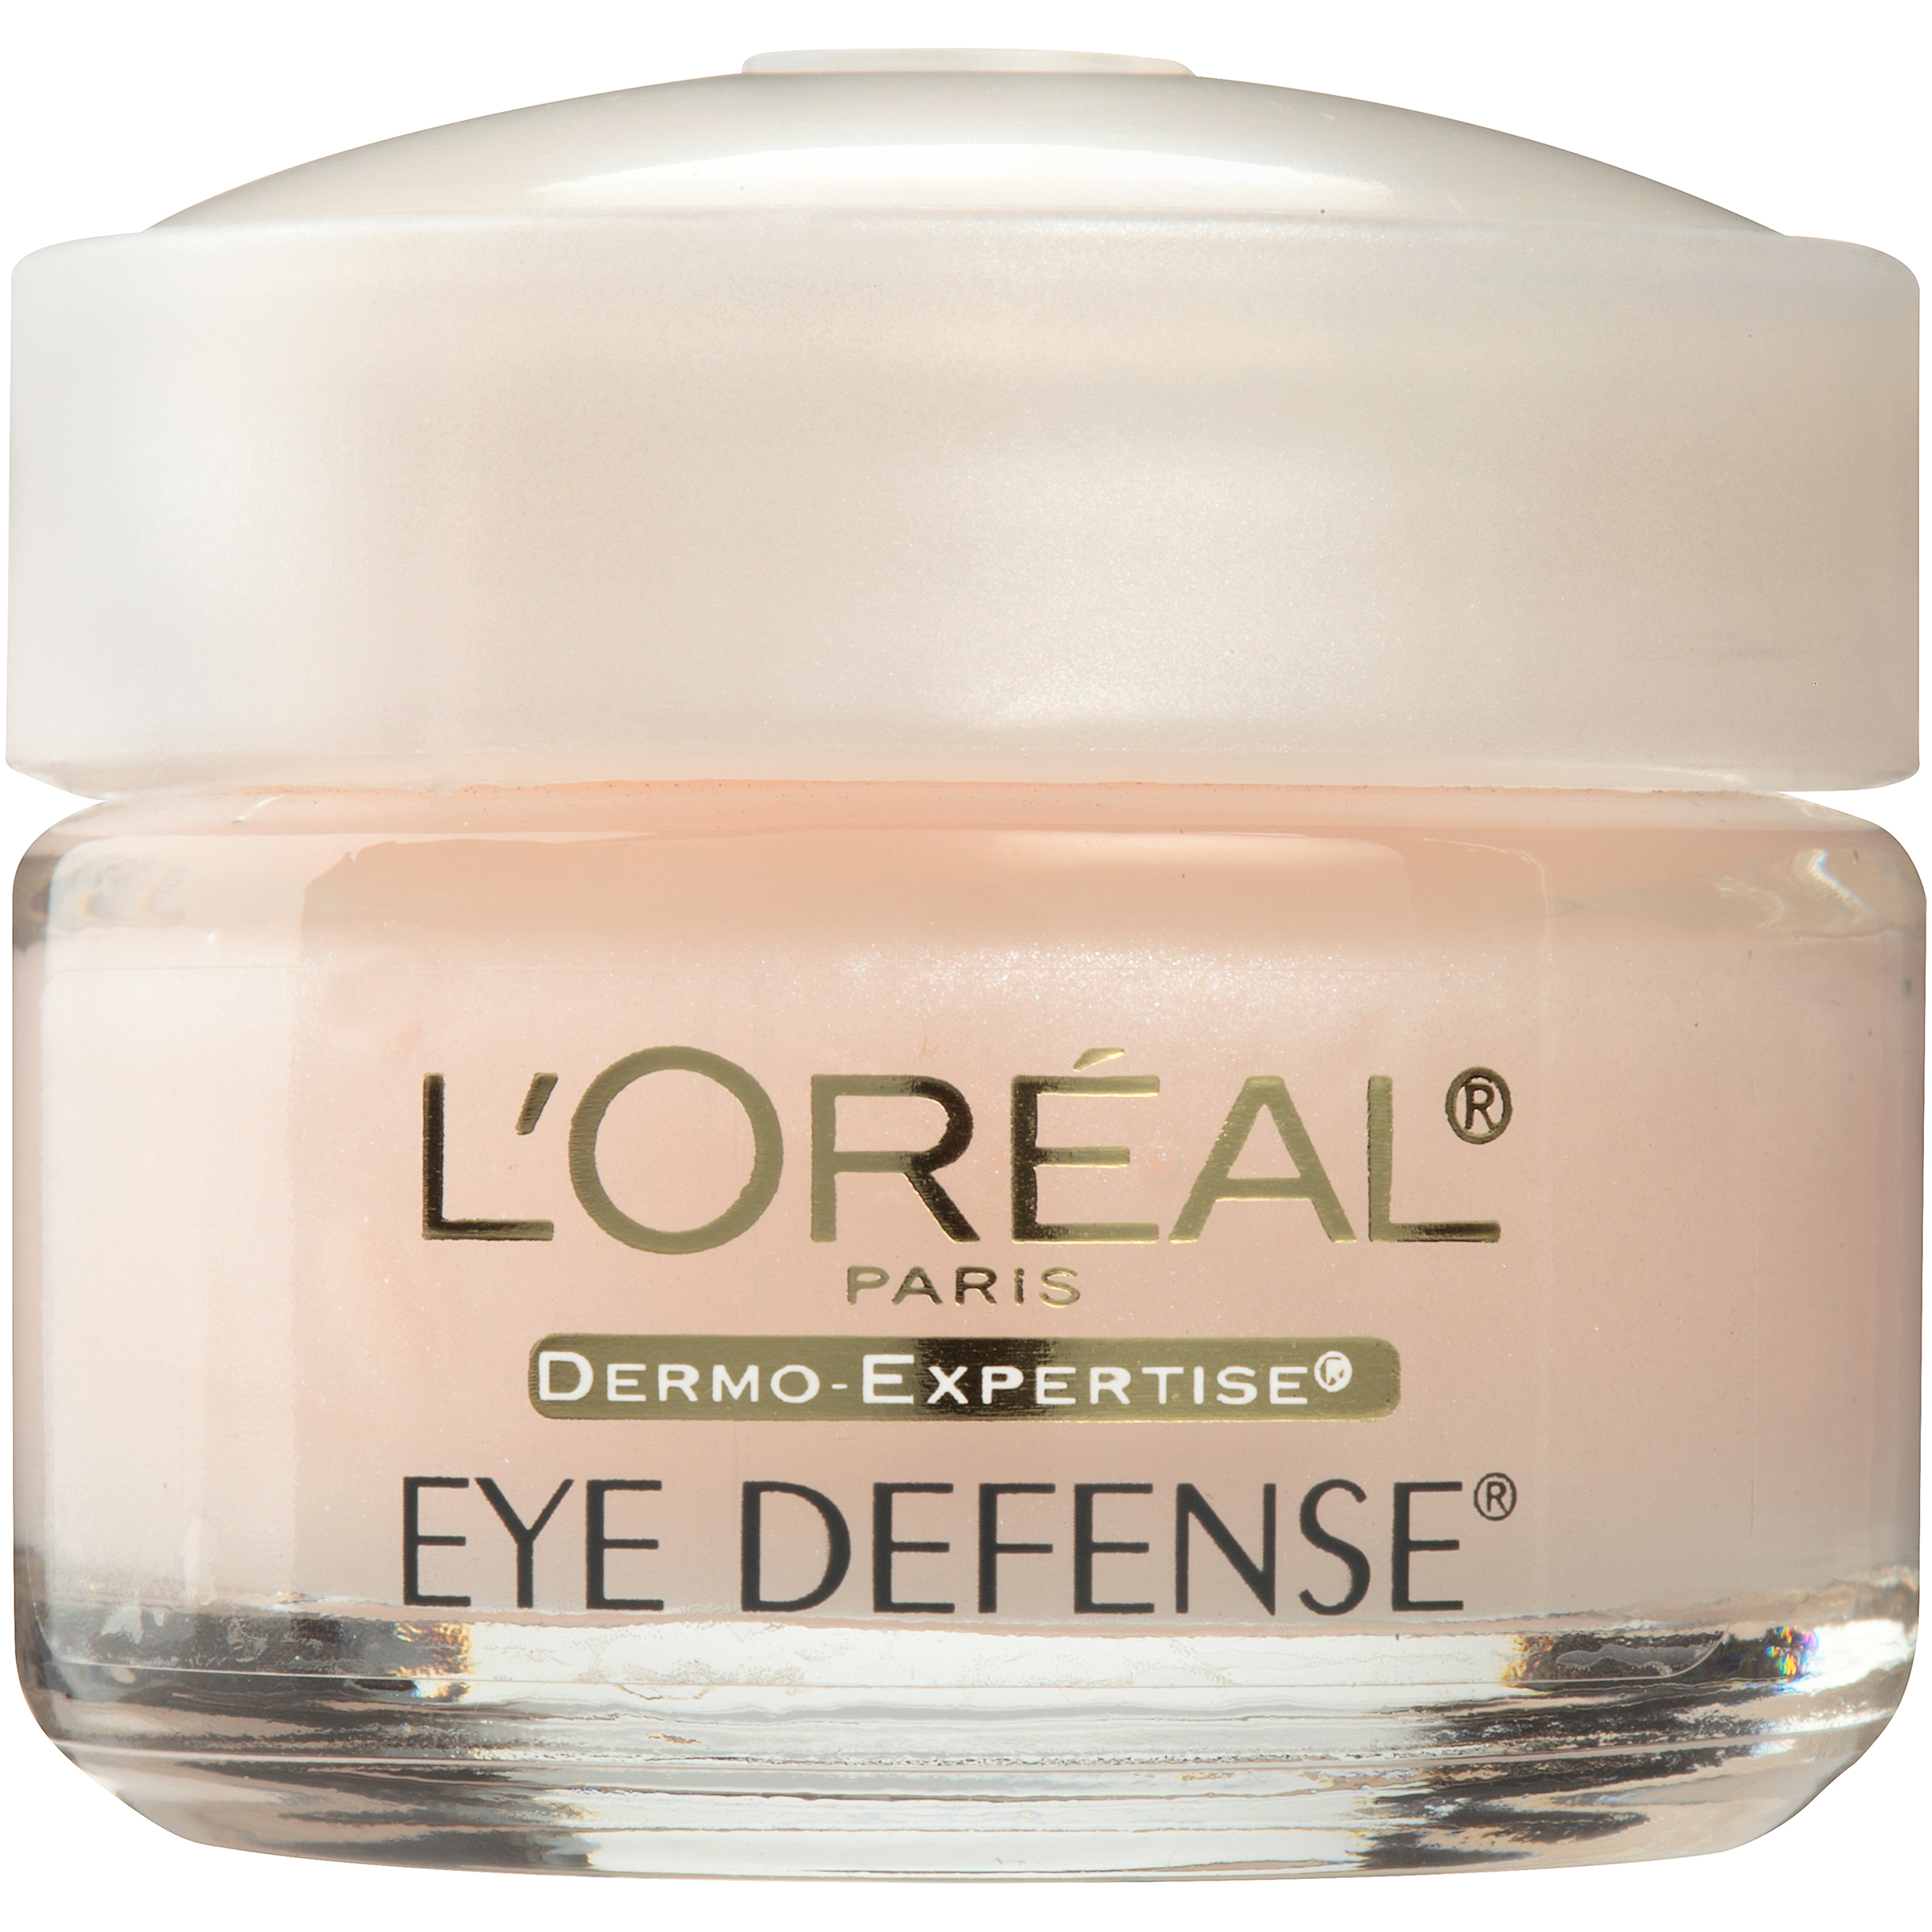 L'Oreal Paris Dermo-Expertise Eye Defense Under Eye Cream ...